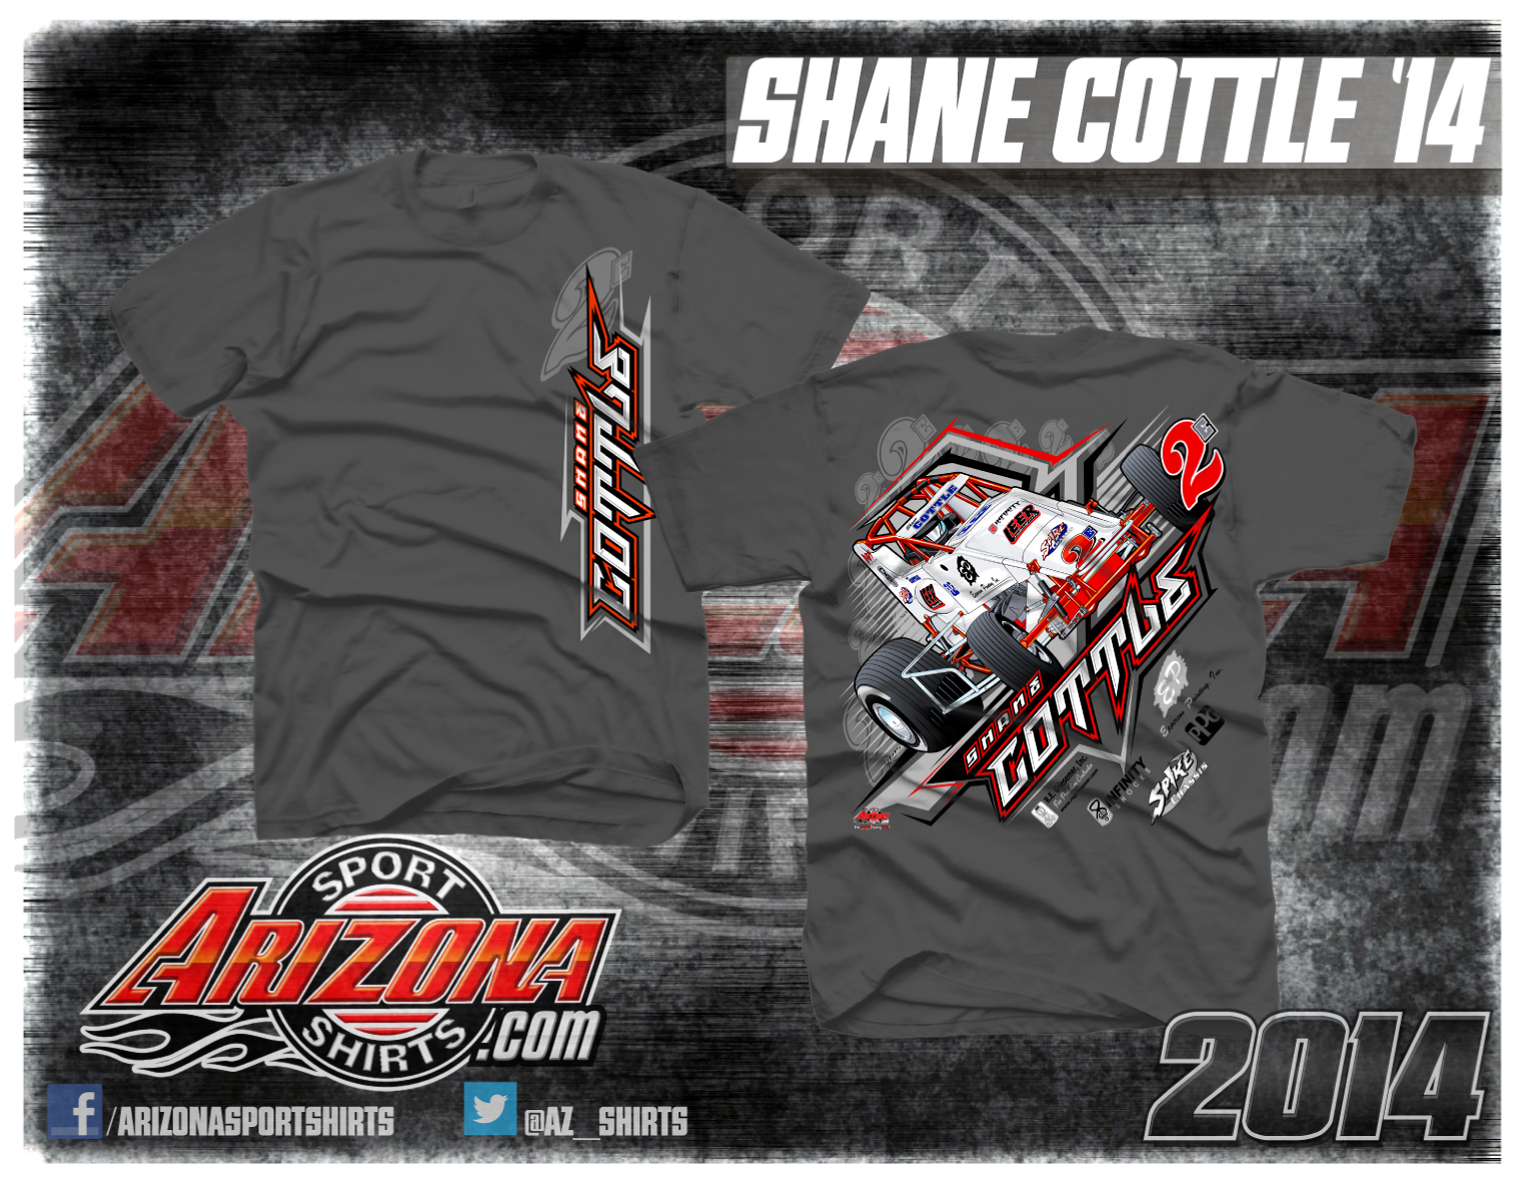 shane-cottle-layout-14